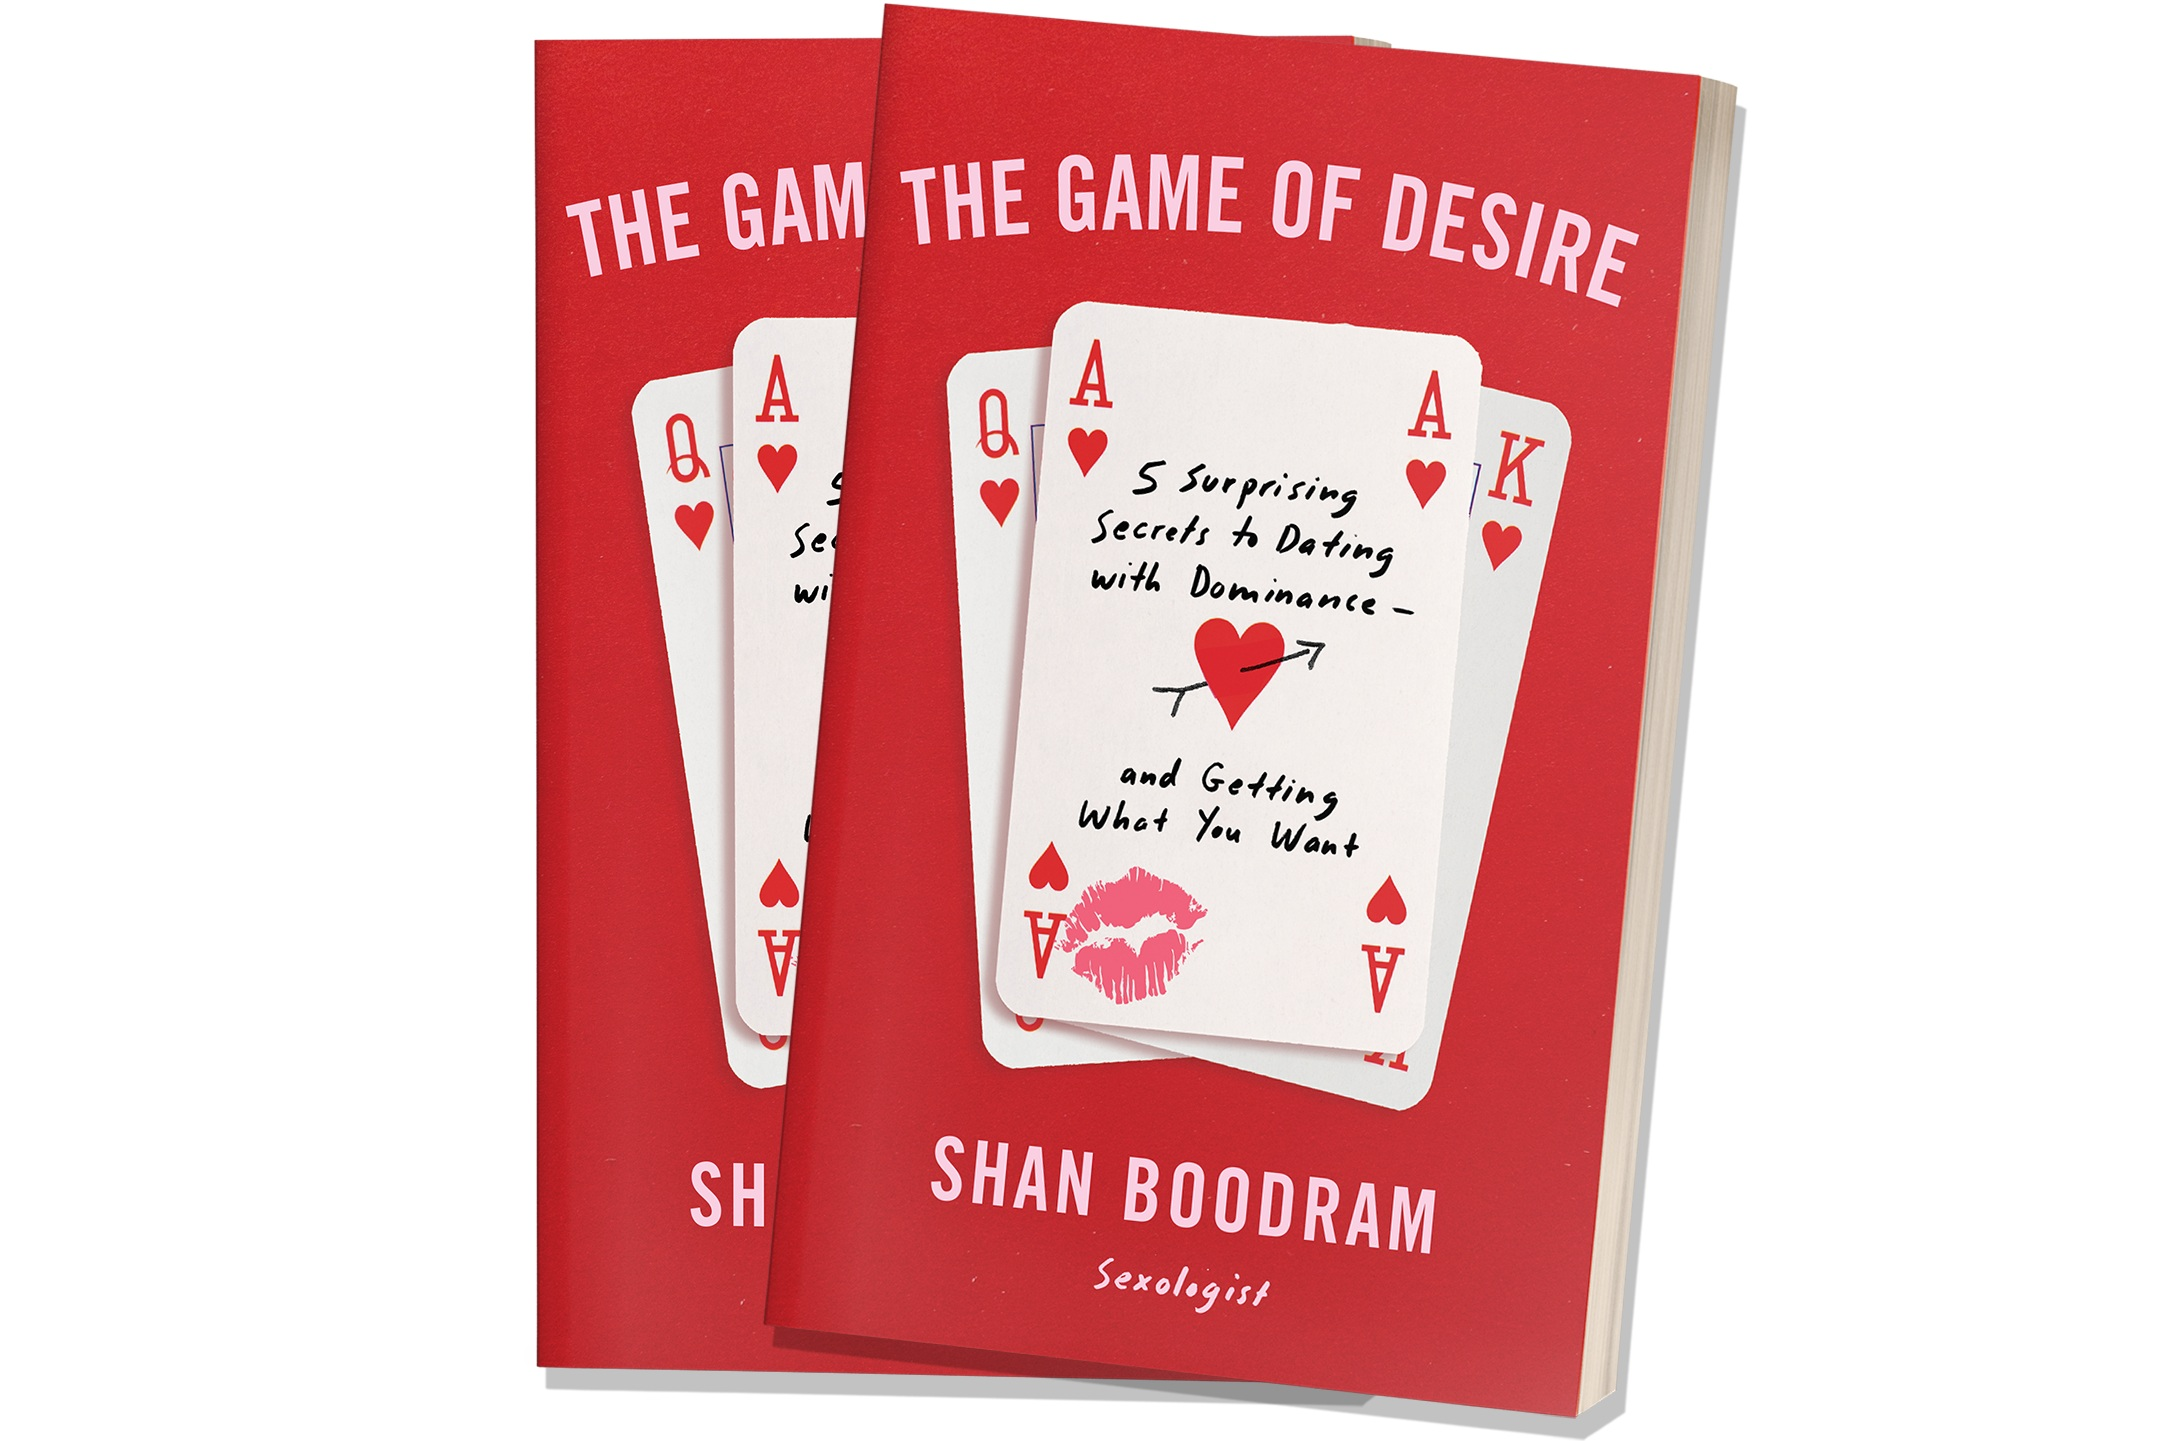 TAG TEAM - When you pre-order 2-4 copies of The Game of Desire you get:1) 10 minute mentoring Q&A phone call2) Access to the private podcast3) 2 Entries into the sweepstakes4) The official teaser + intro of #TGOD5) 20% off #TGOD Conversation-Starter Shirts